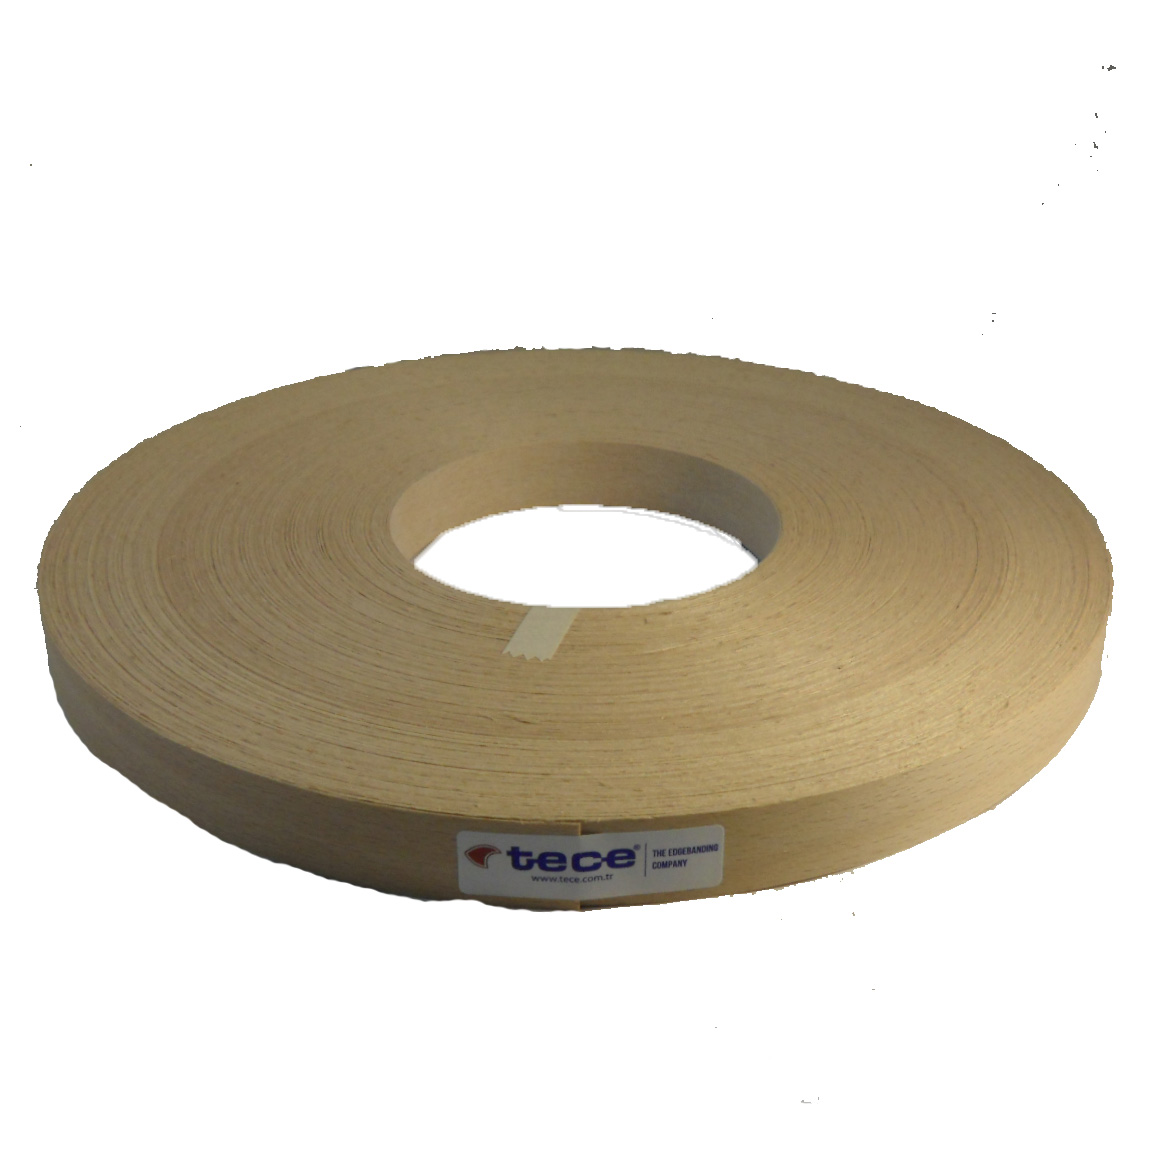 Fleece backed veneer edge band Beech 22mm - Tece K01